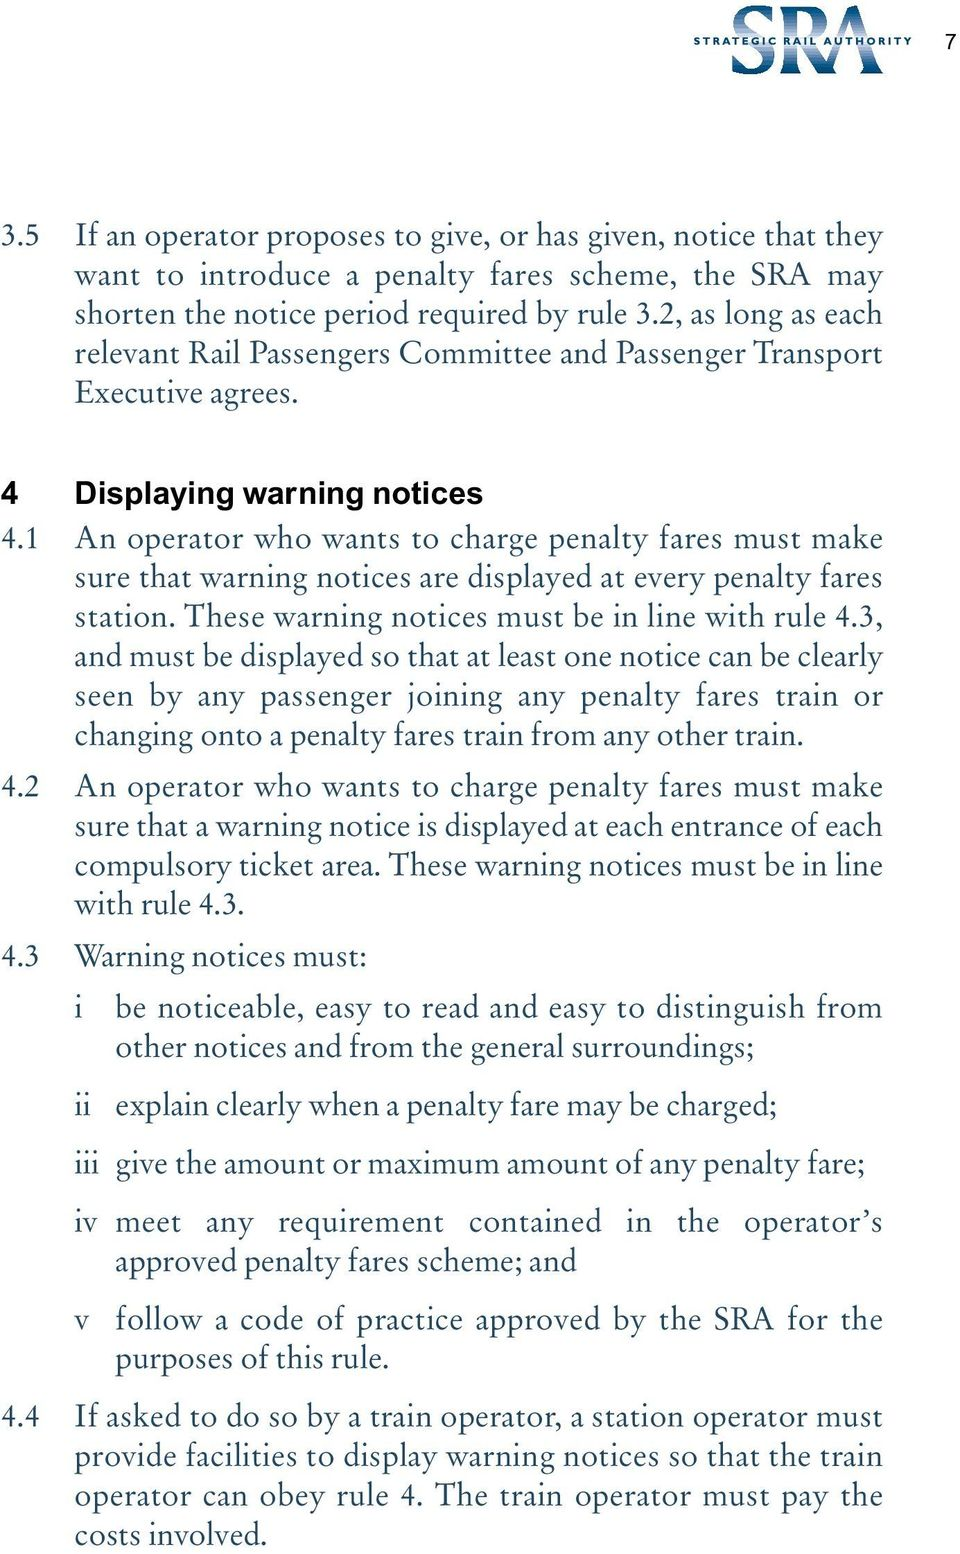 1 An operator who wants to charge penalty fares must make sure that warning notices are displayed at every penalty fares station. These warning notices must be in line with rule 4.